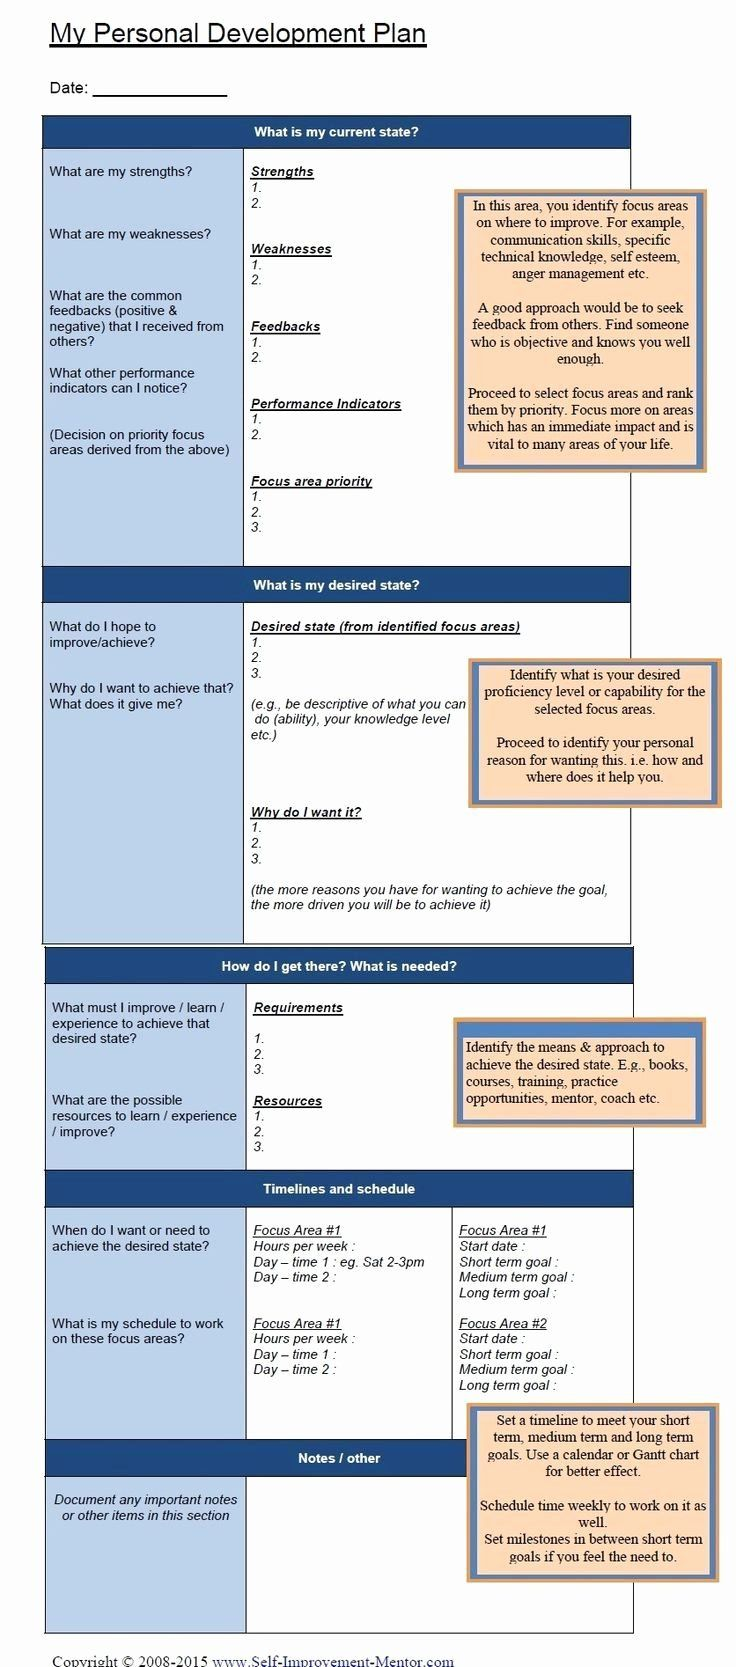 30 Personal Strategic Plan Template in 2022 Personal